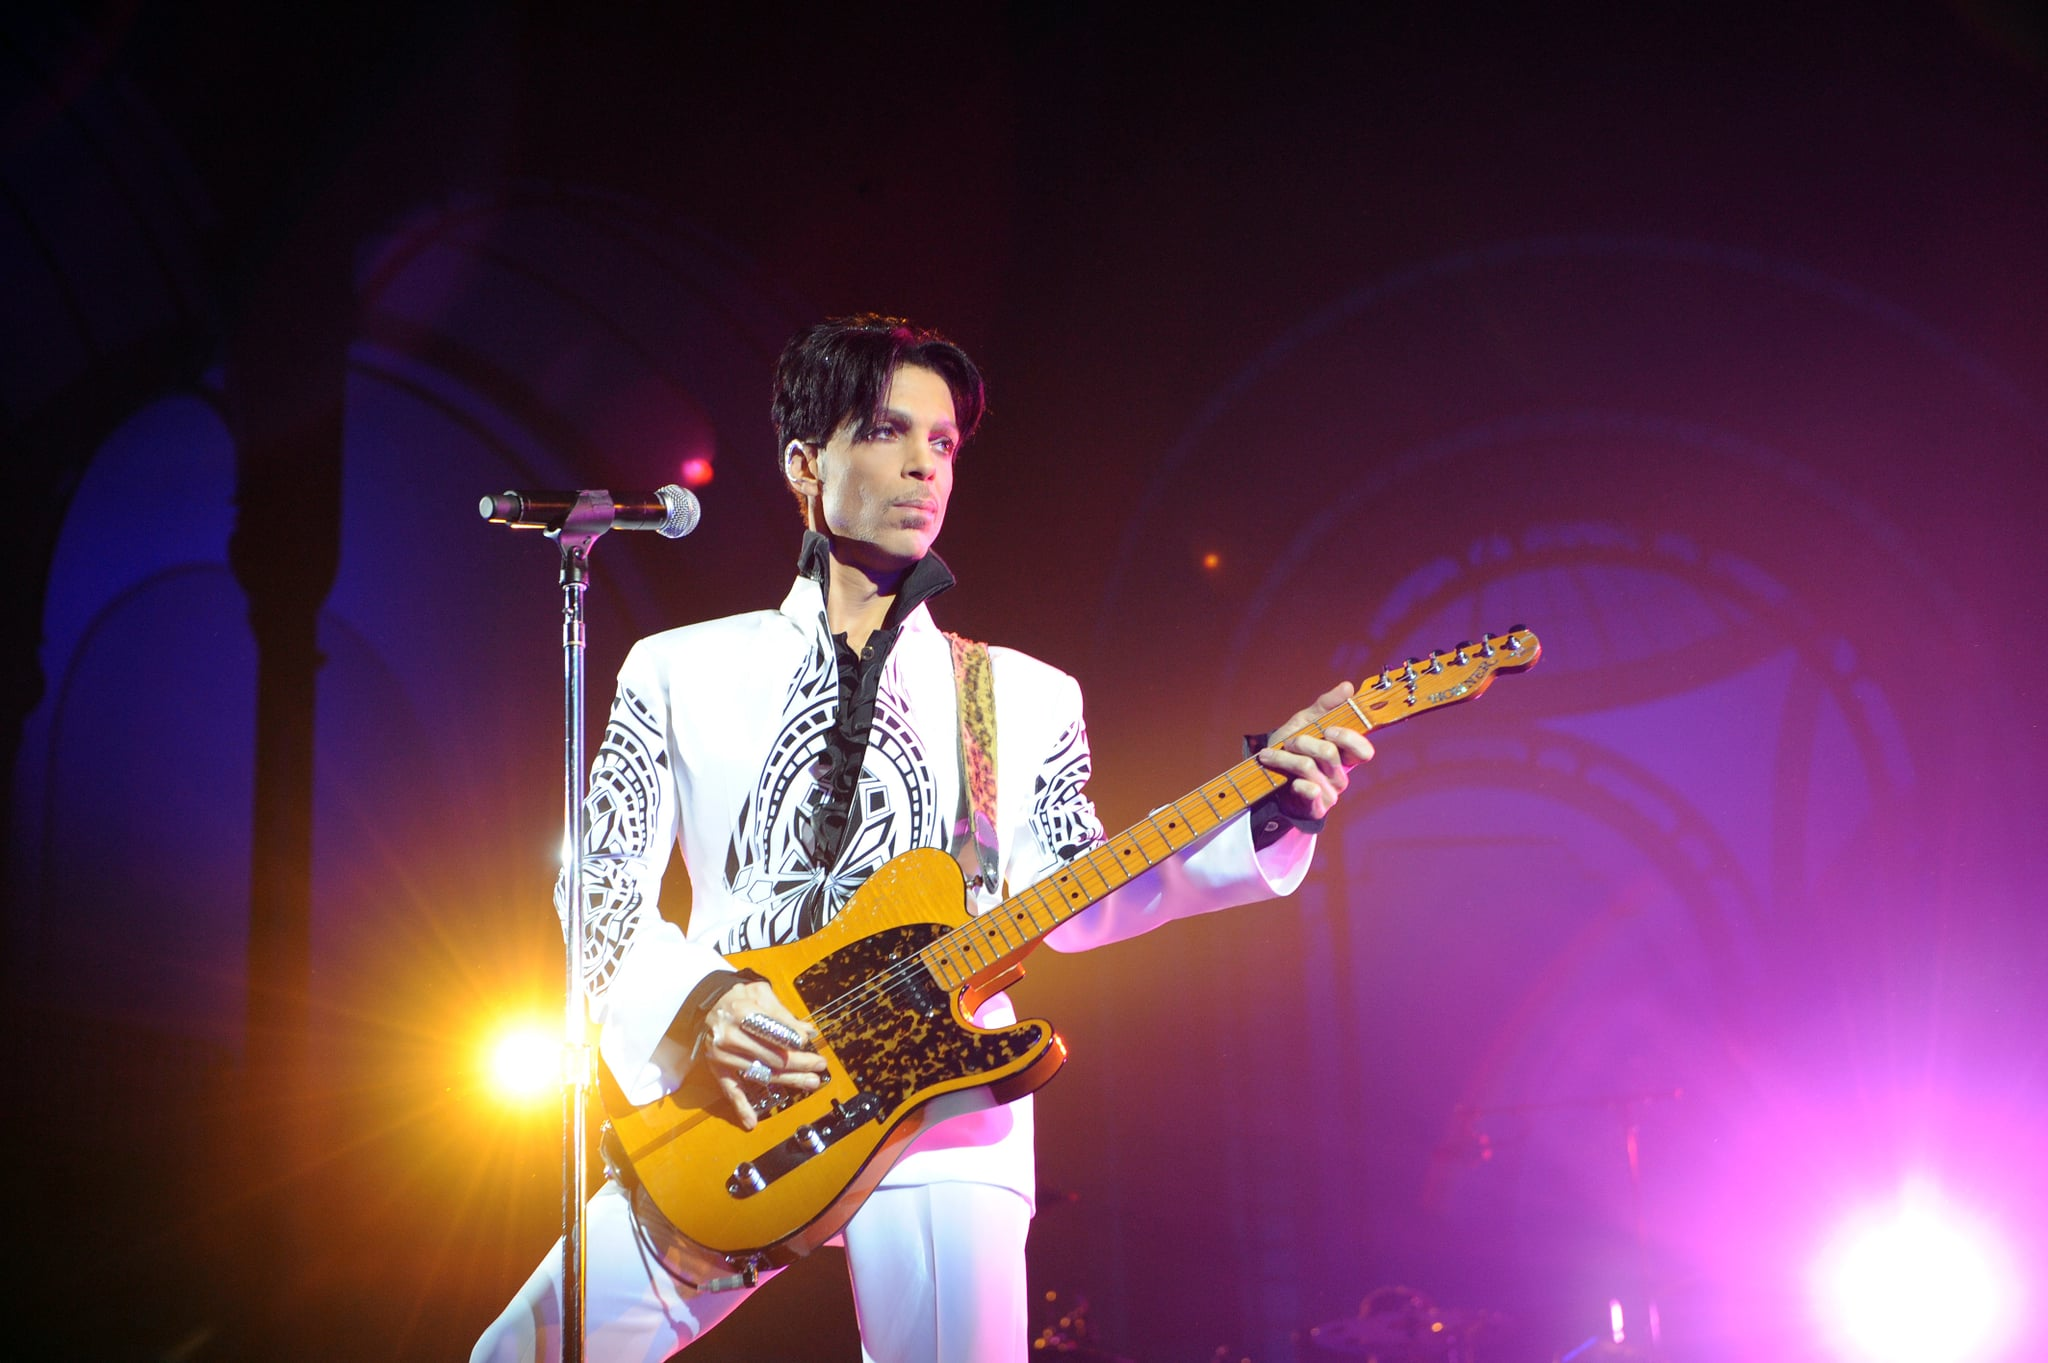 US singer Prince performs on October 11, 2009 at the Grand Palais in Paris. Prince has decided to give two extra concerts at the Grand Palais titled